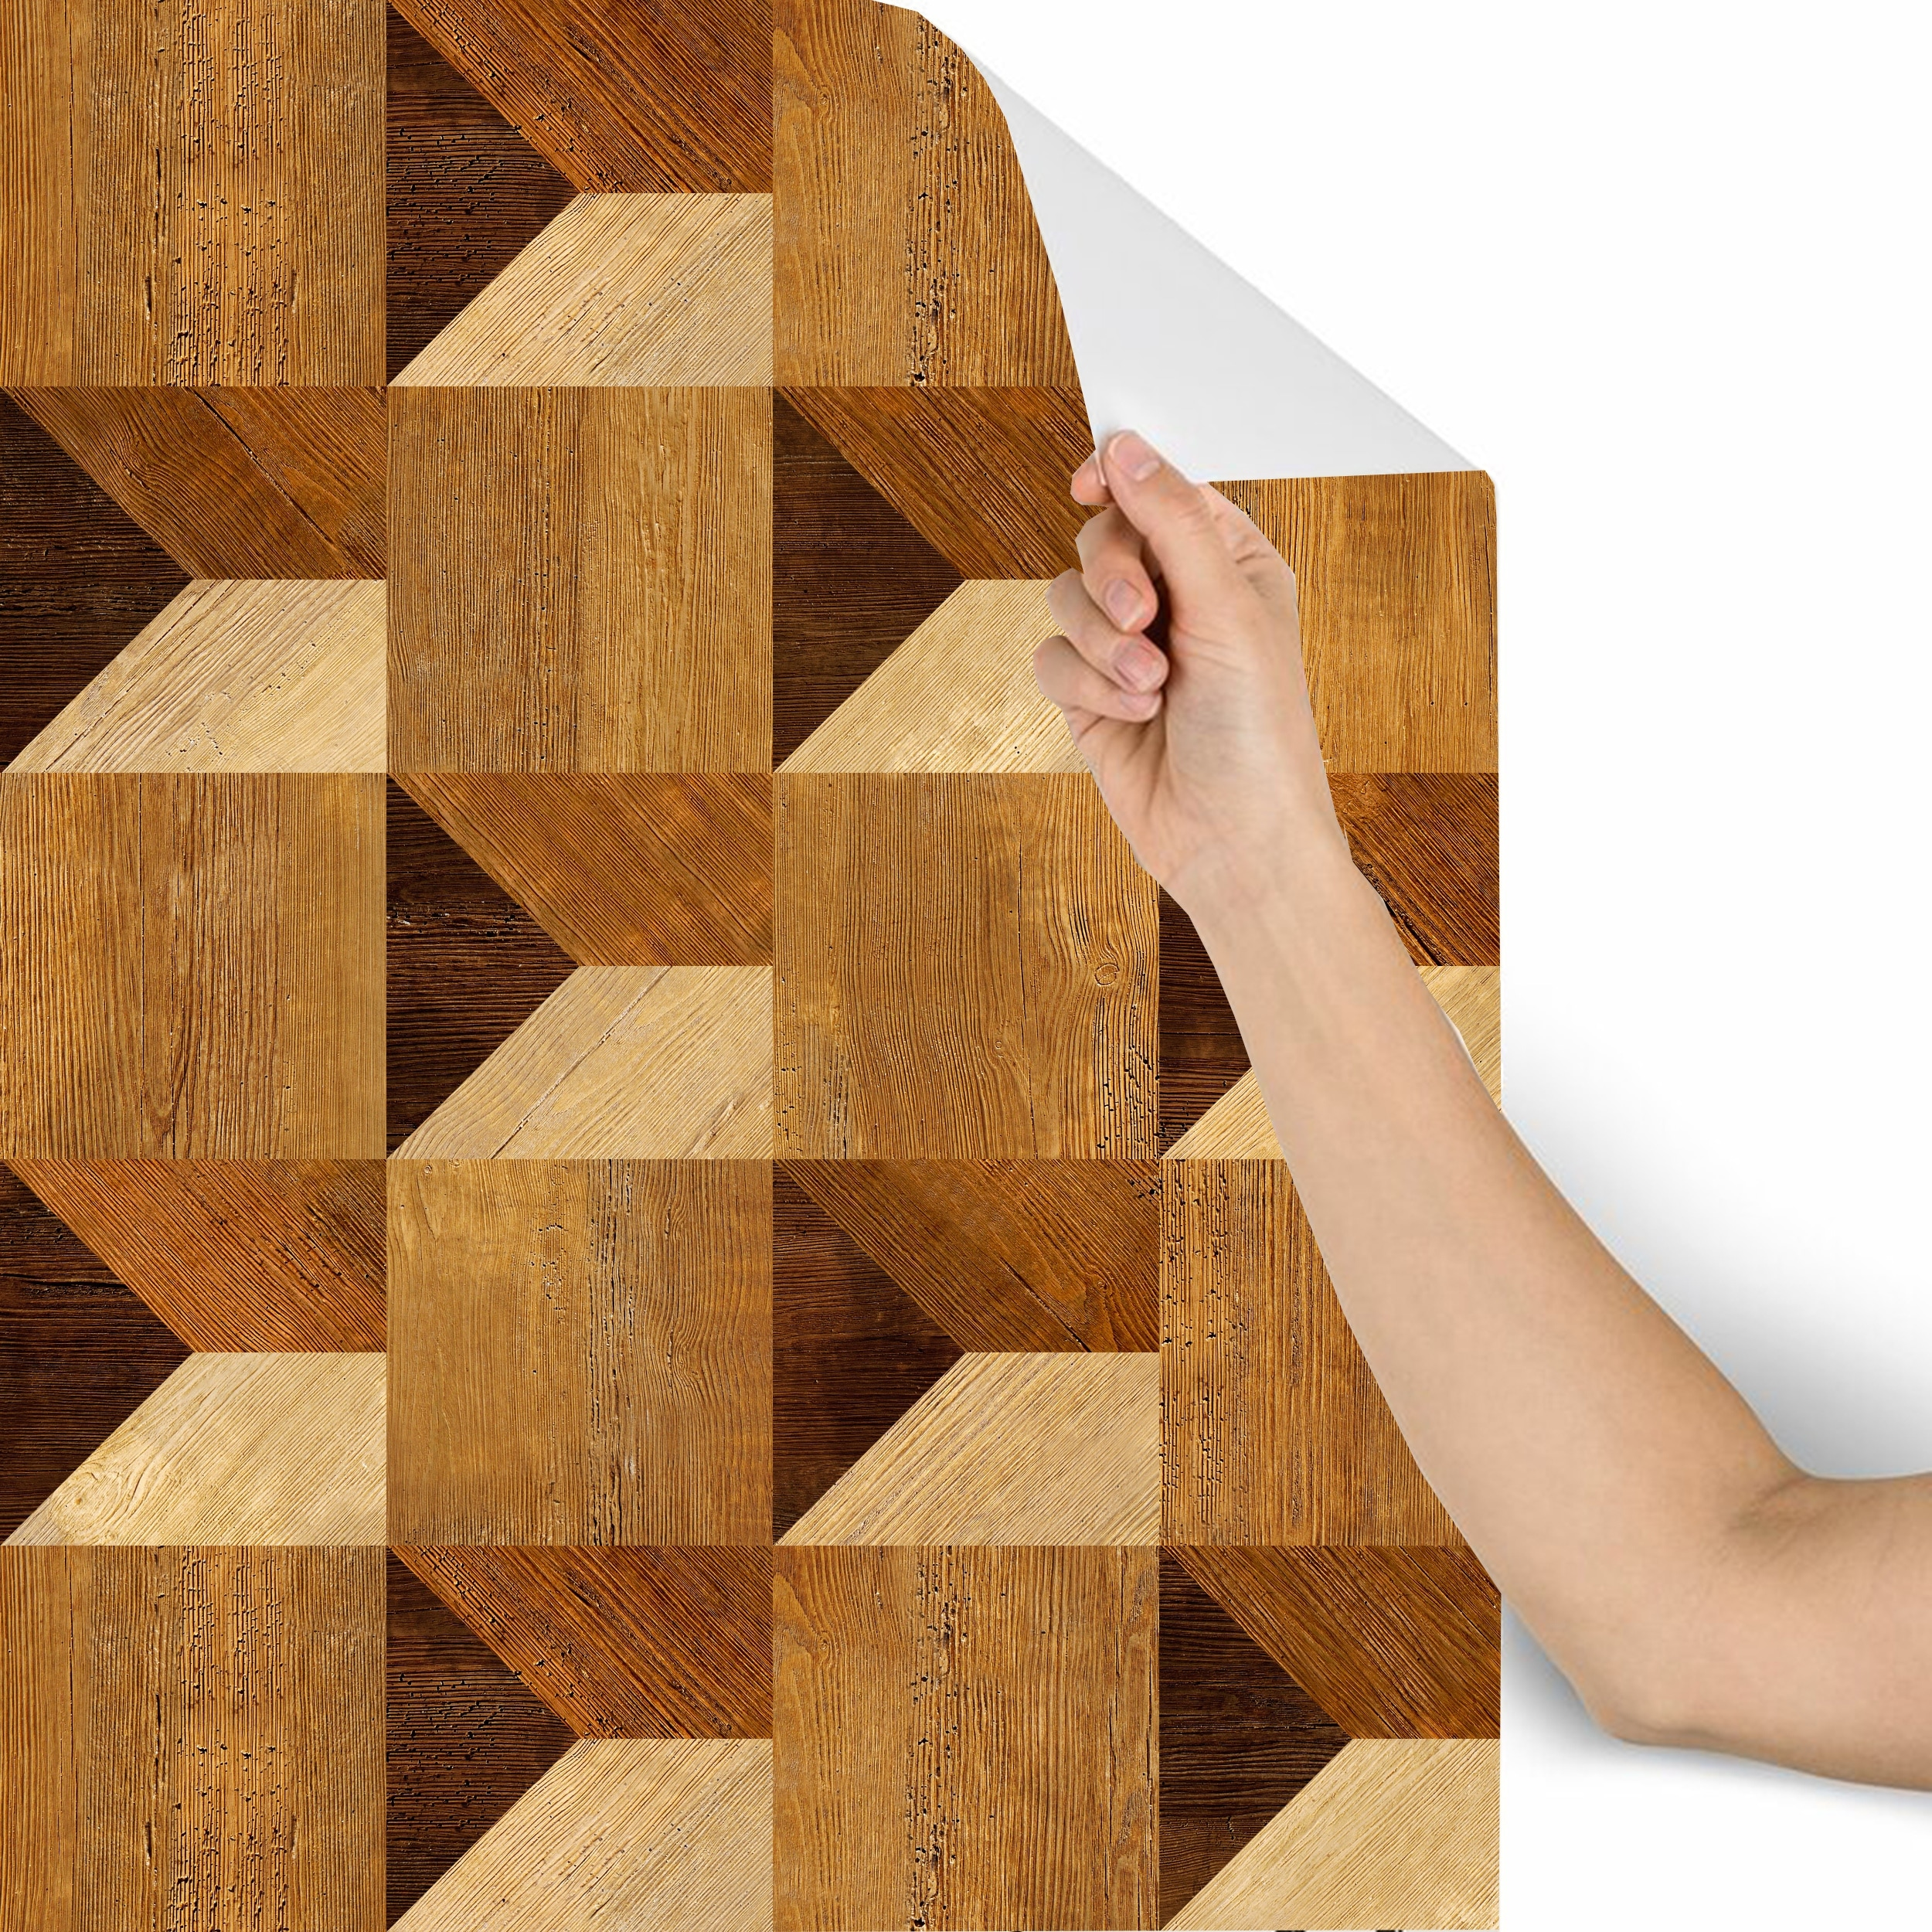 Shop 3d Decorative Wood Paneling Removable Wallpaper 10 Ft H X 24 Inch W Overstock 31702838